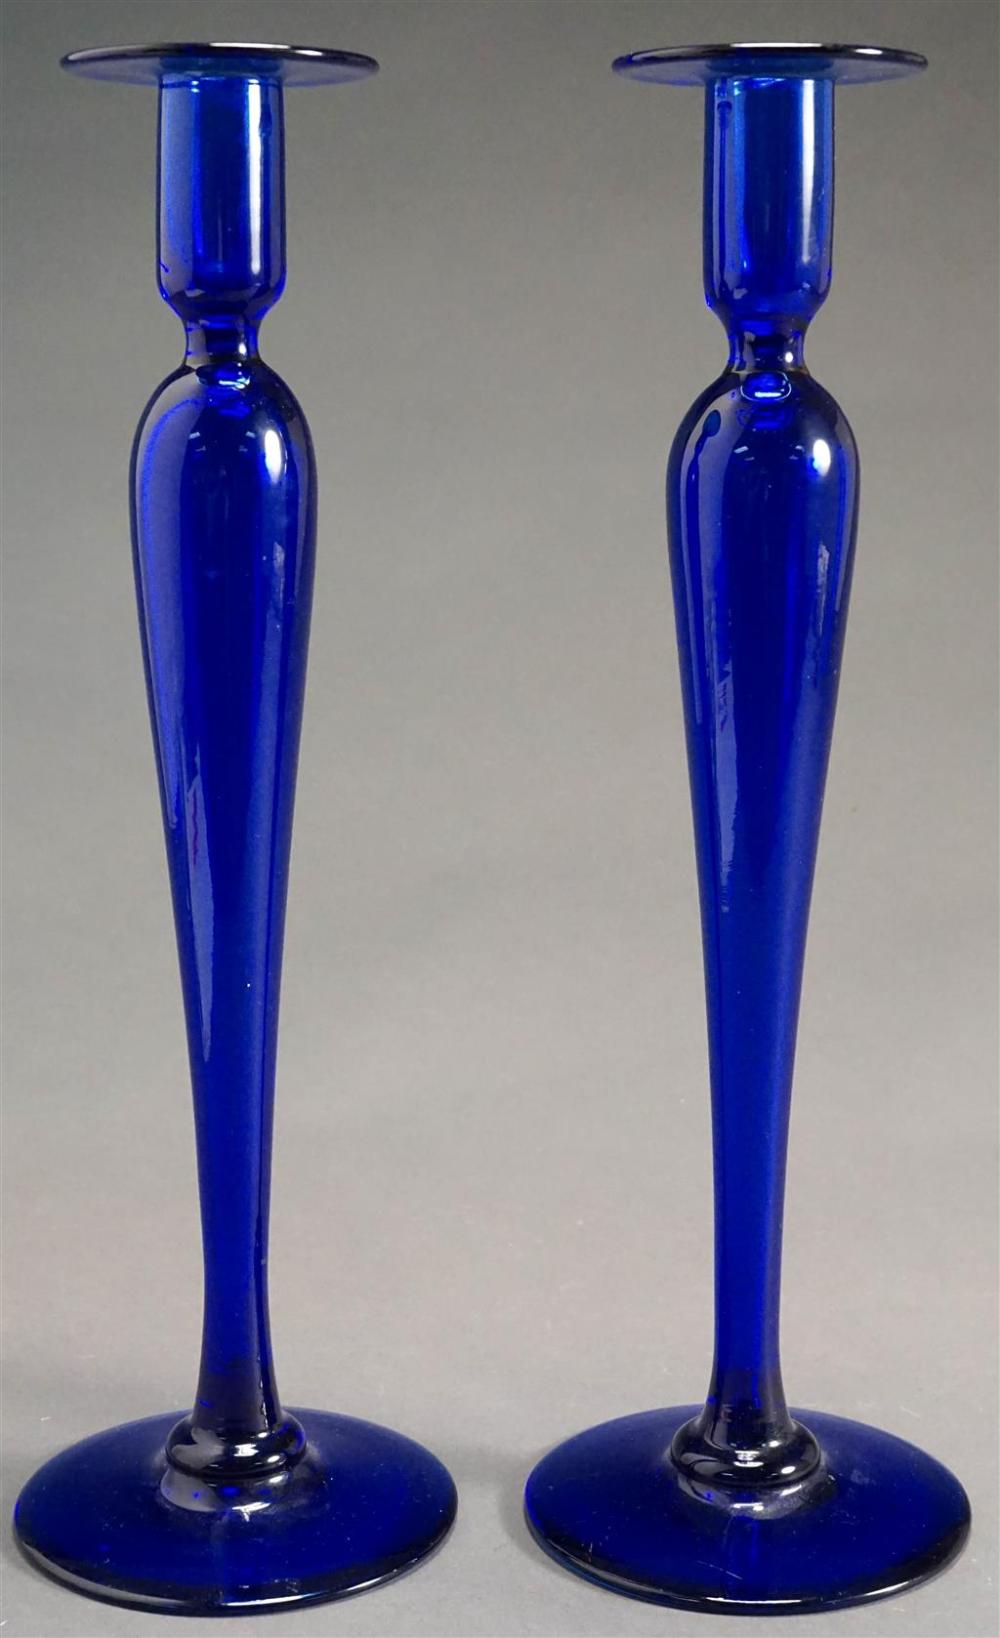 Pair of Pairpoint Cobalt Blue Glass Candlesticks, H: 16 in